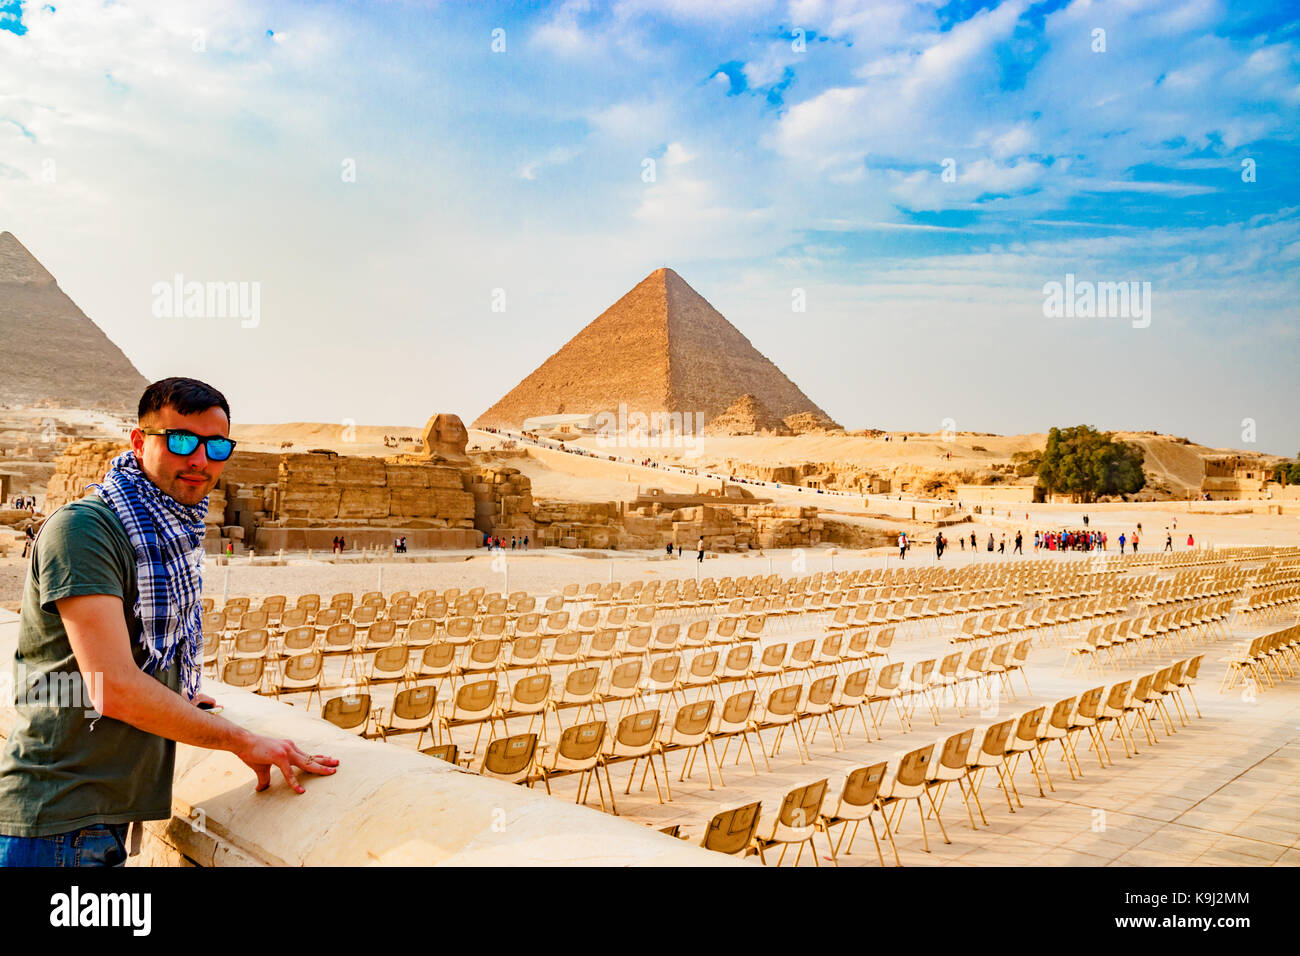 Looking at chairs near the pyramid in Cairo, Egypt - Stock Image